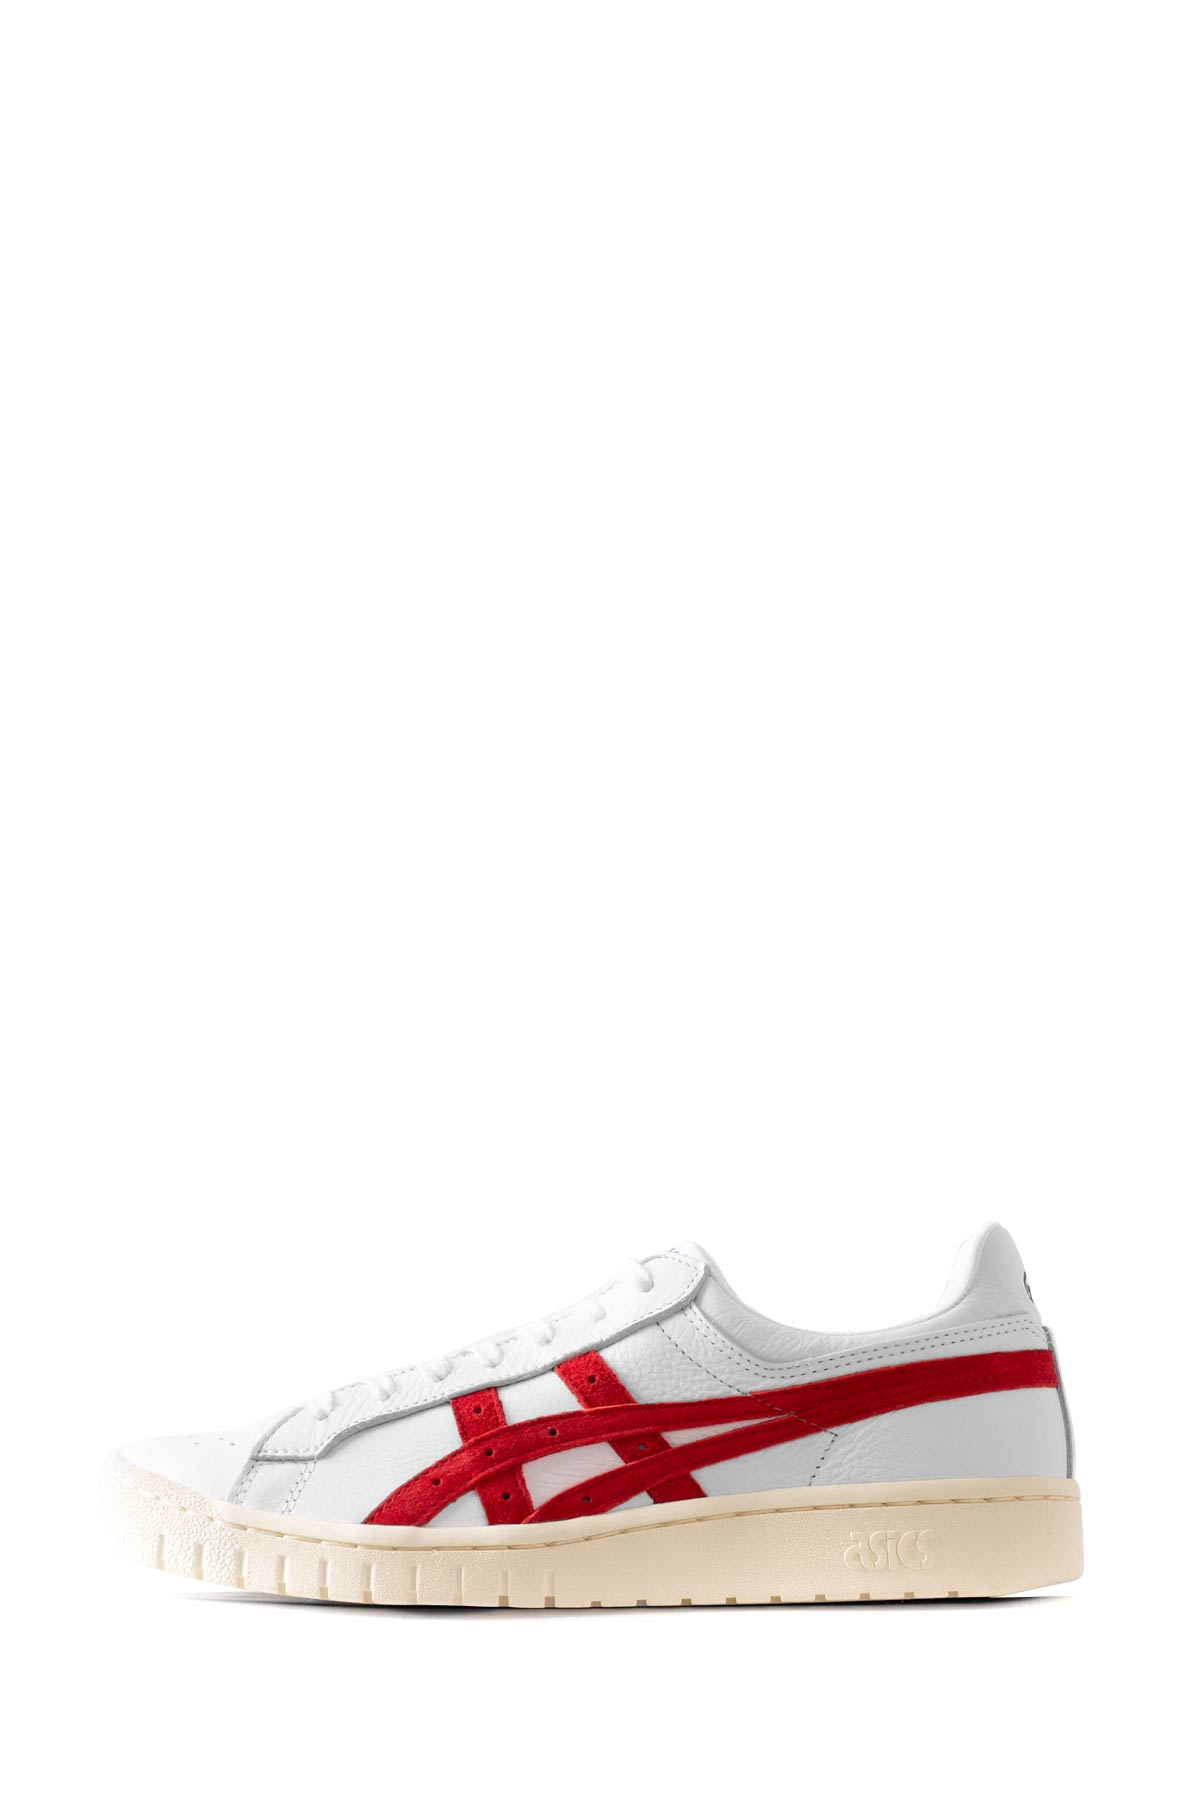 asics tiger : GEL-PTG H8M2L (White / Red)